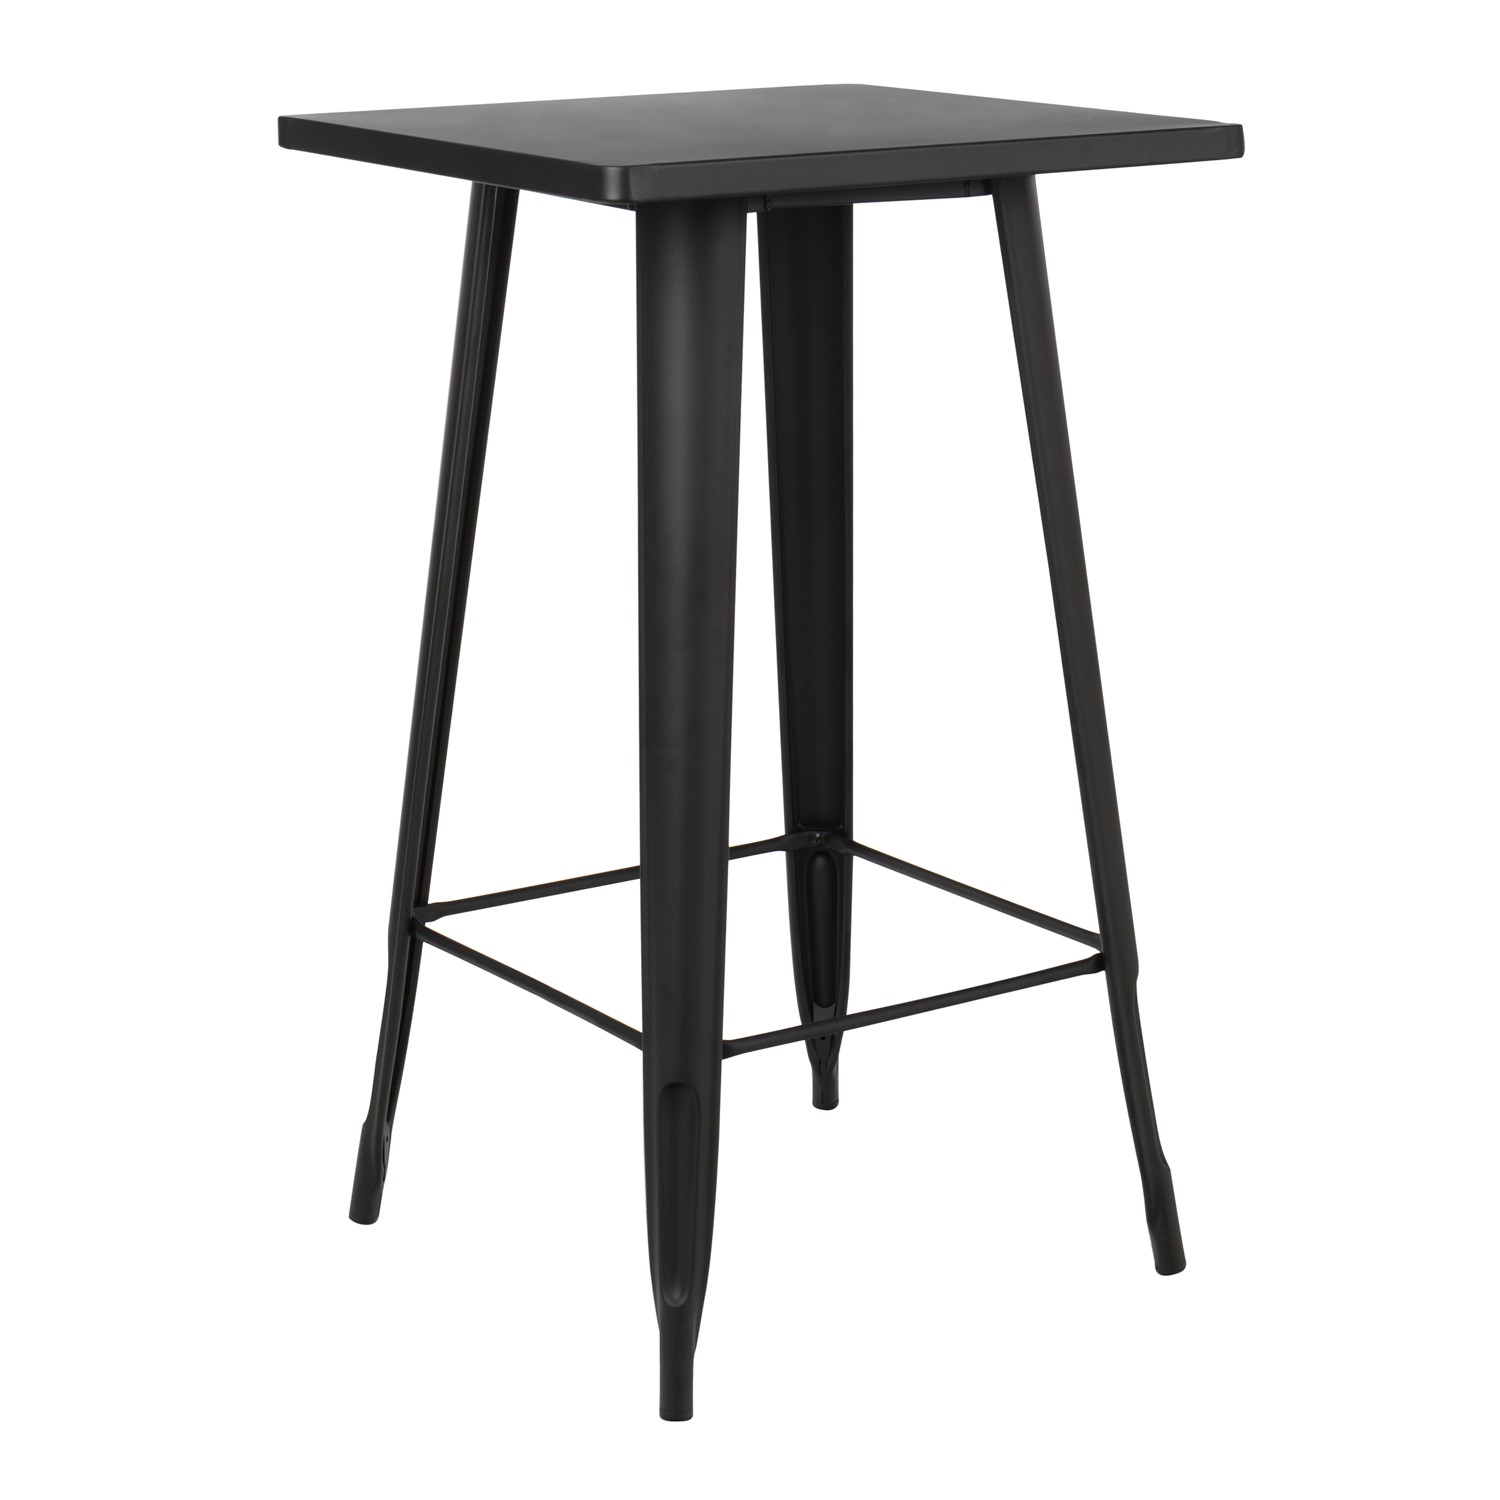 Square Metal High Table (60x60 cm) LIX Mate, gallery image 1